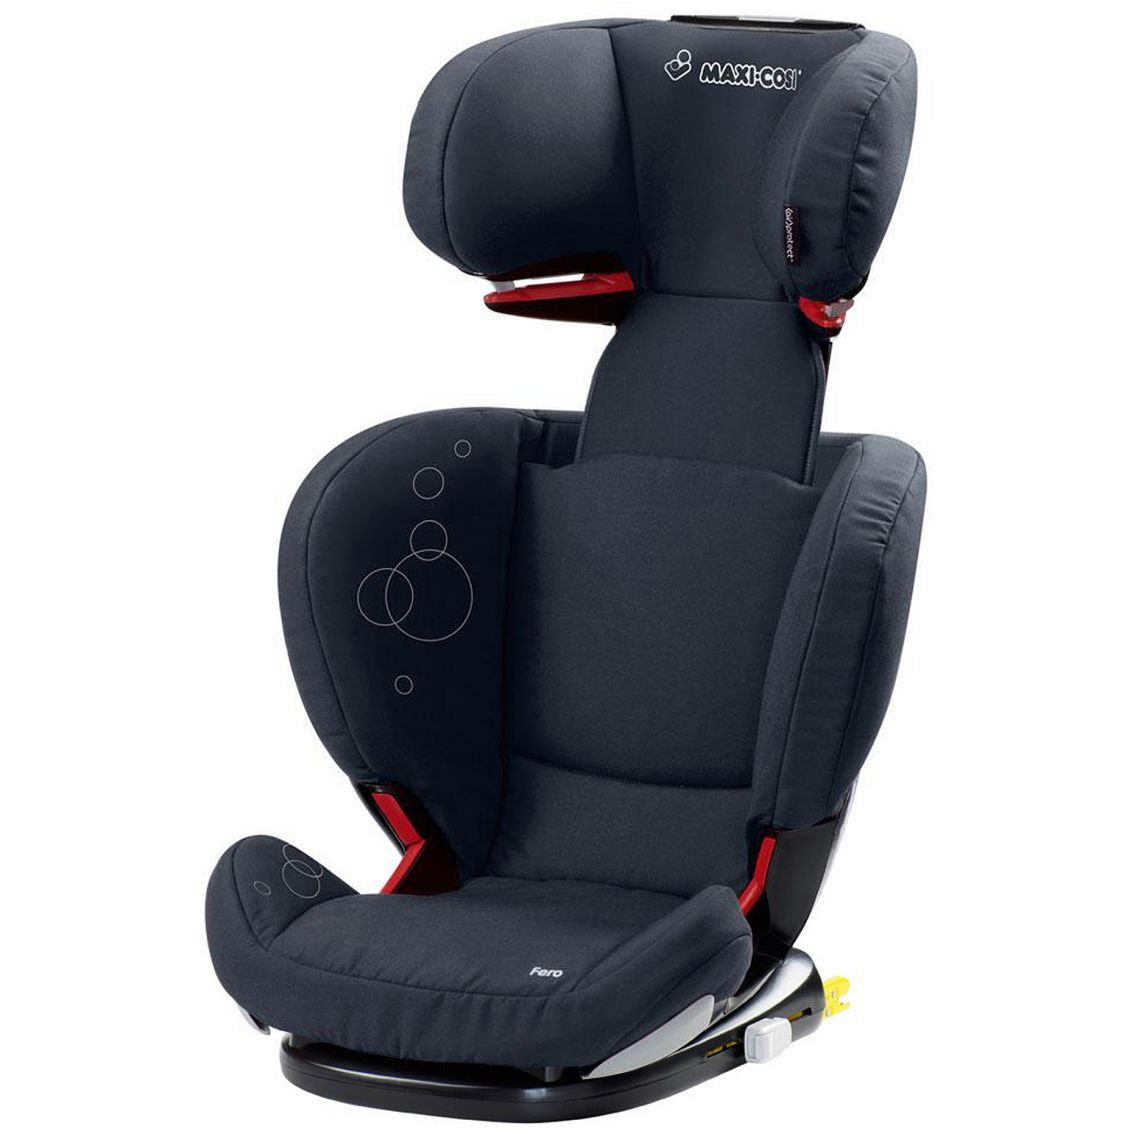 maxi cosi maxi cosi ferofix car seat maxi cosi from w h. Black Bedroom Furniture Sets. Home Design Ideas